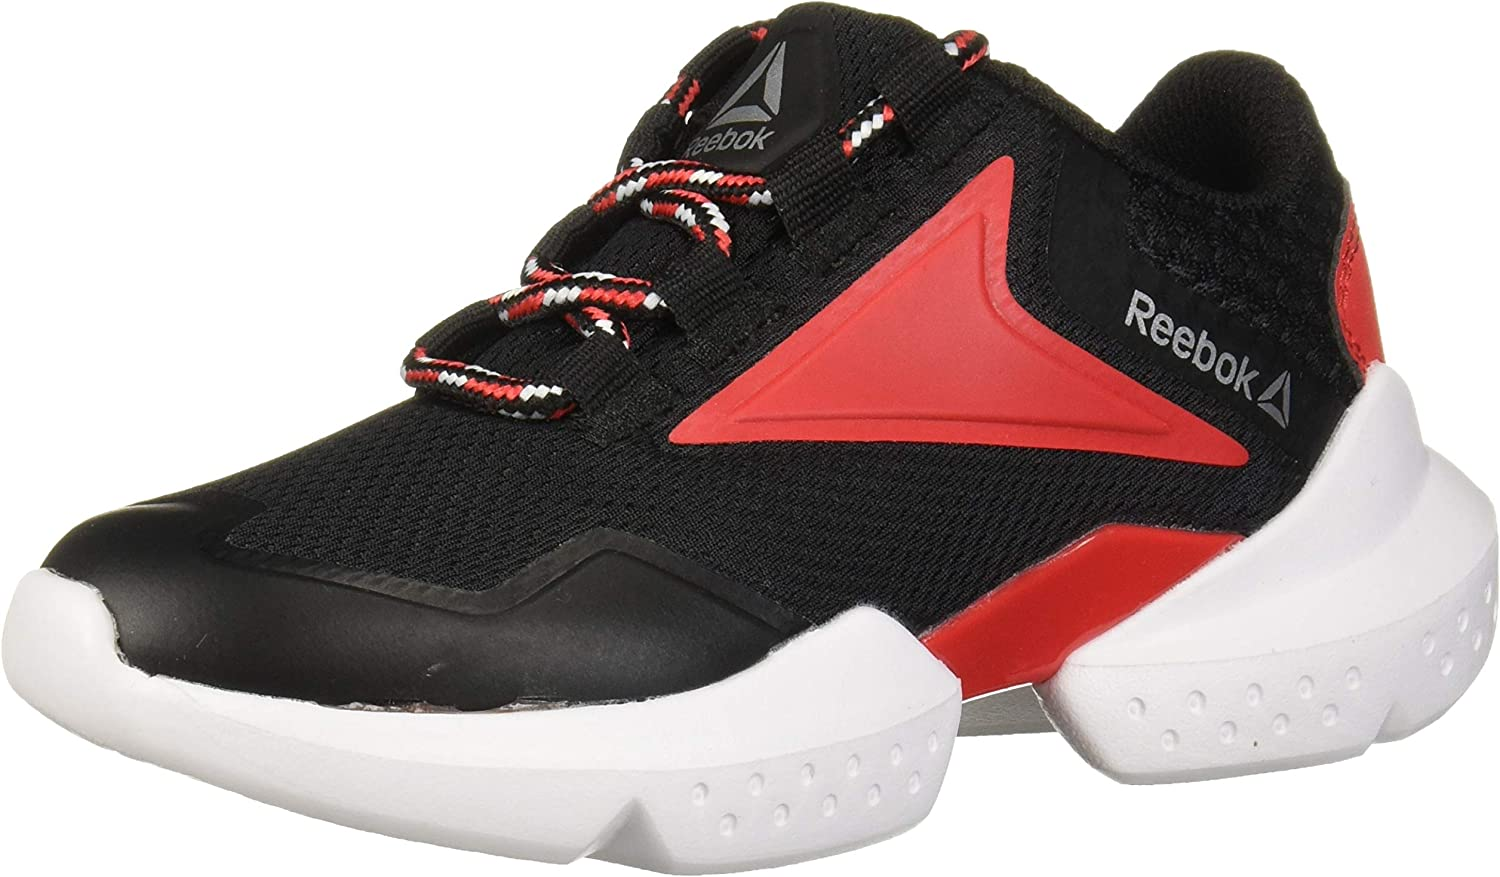 Reebok Unisex-Child Road Supreme 2.0 Cross Trainer